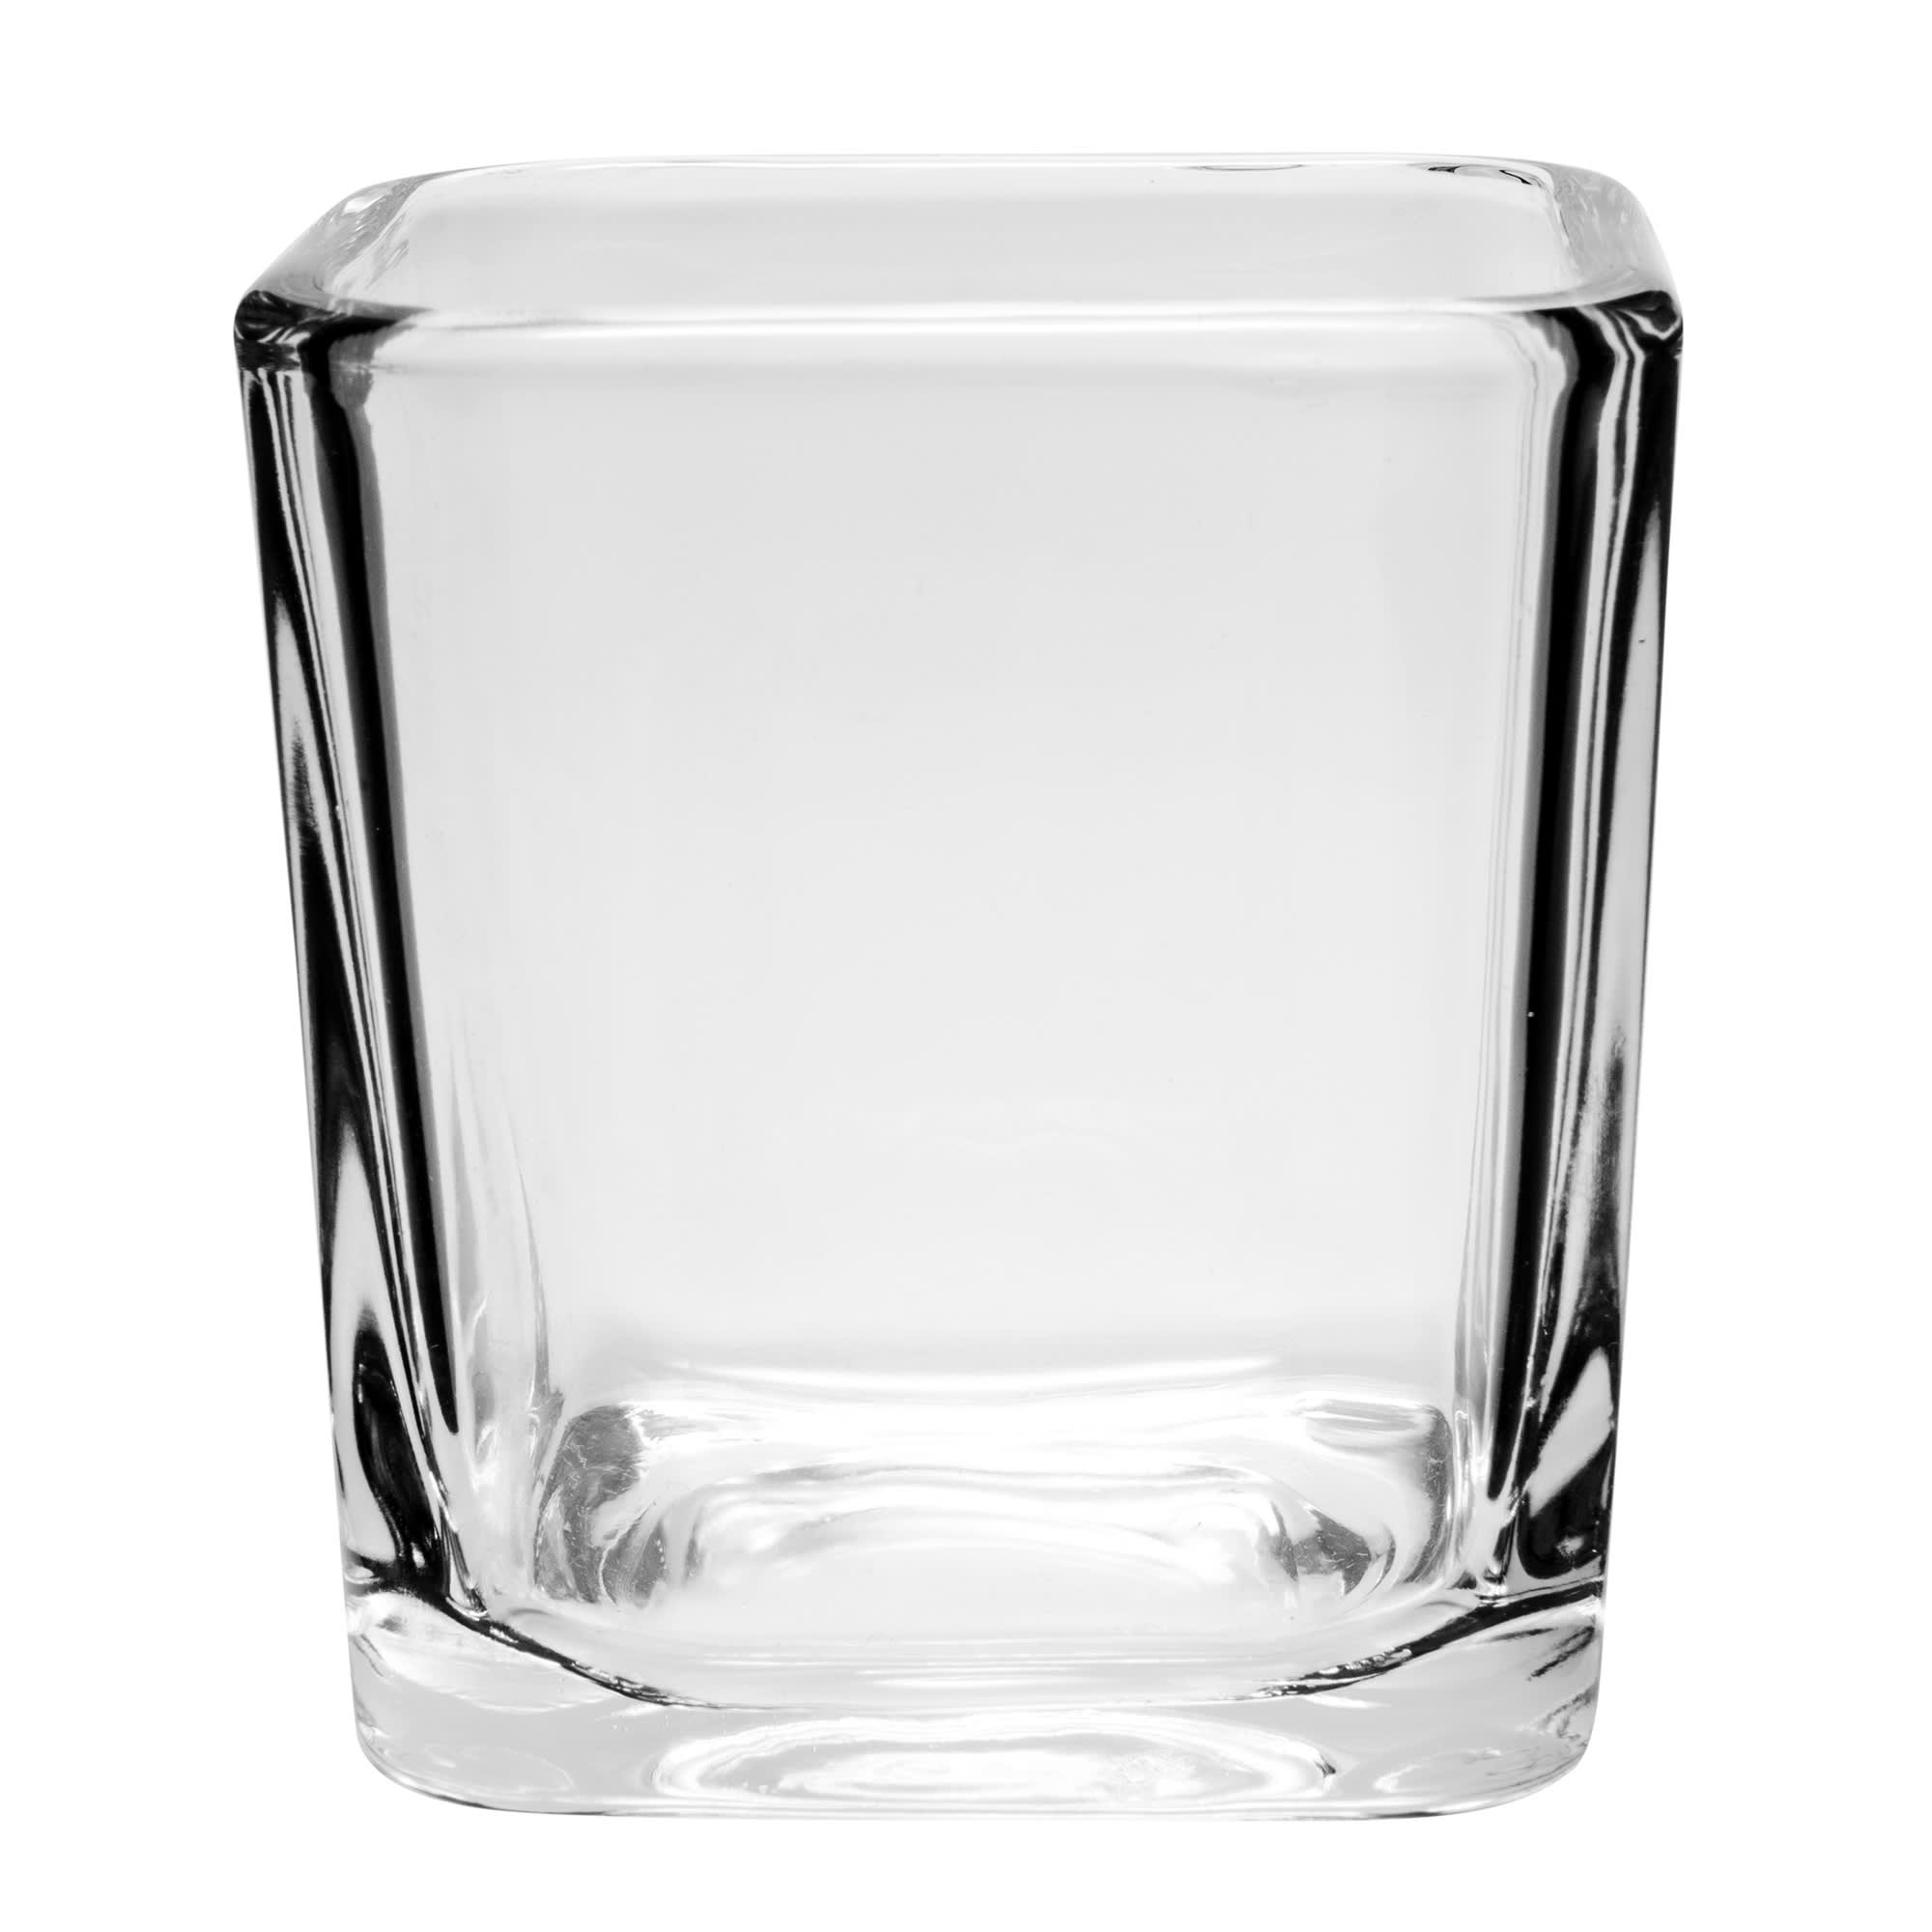 Libbey 5474 7.5 oz Clear Glass Cube Voltive Candle Holder